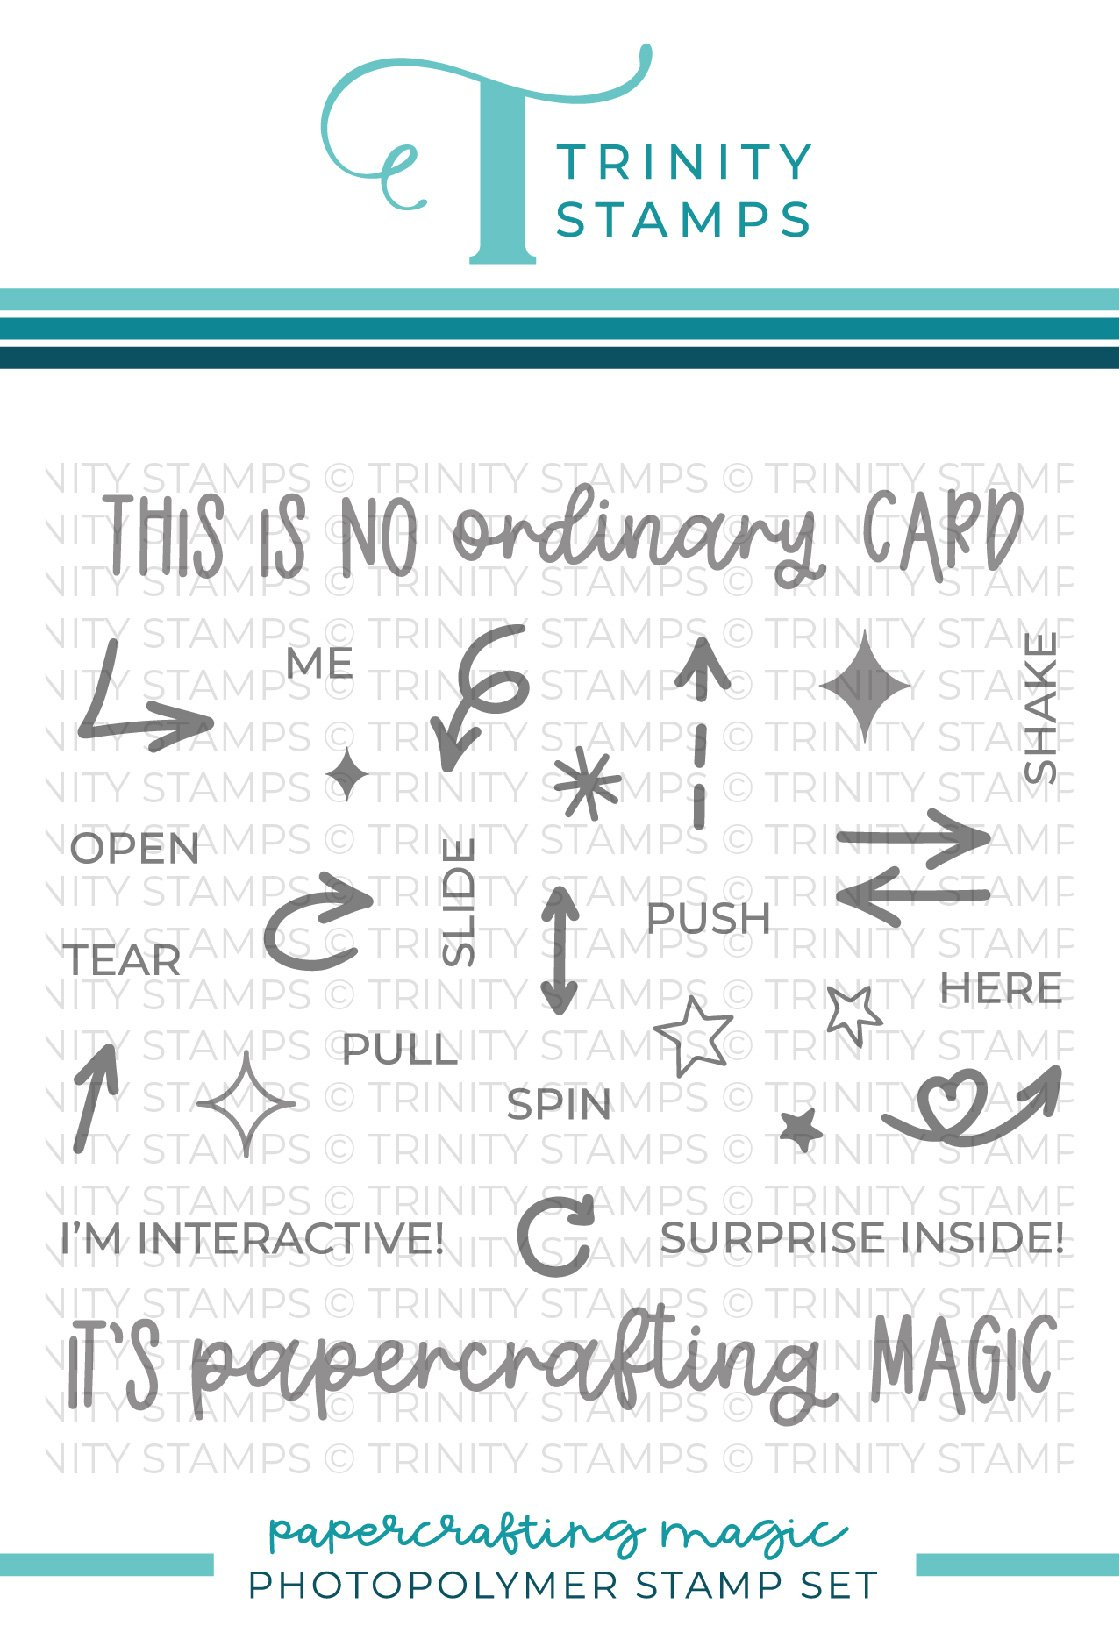 *NEW* - Trinity Stamps - Papercrafting Magic 4x4 Stamp Set